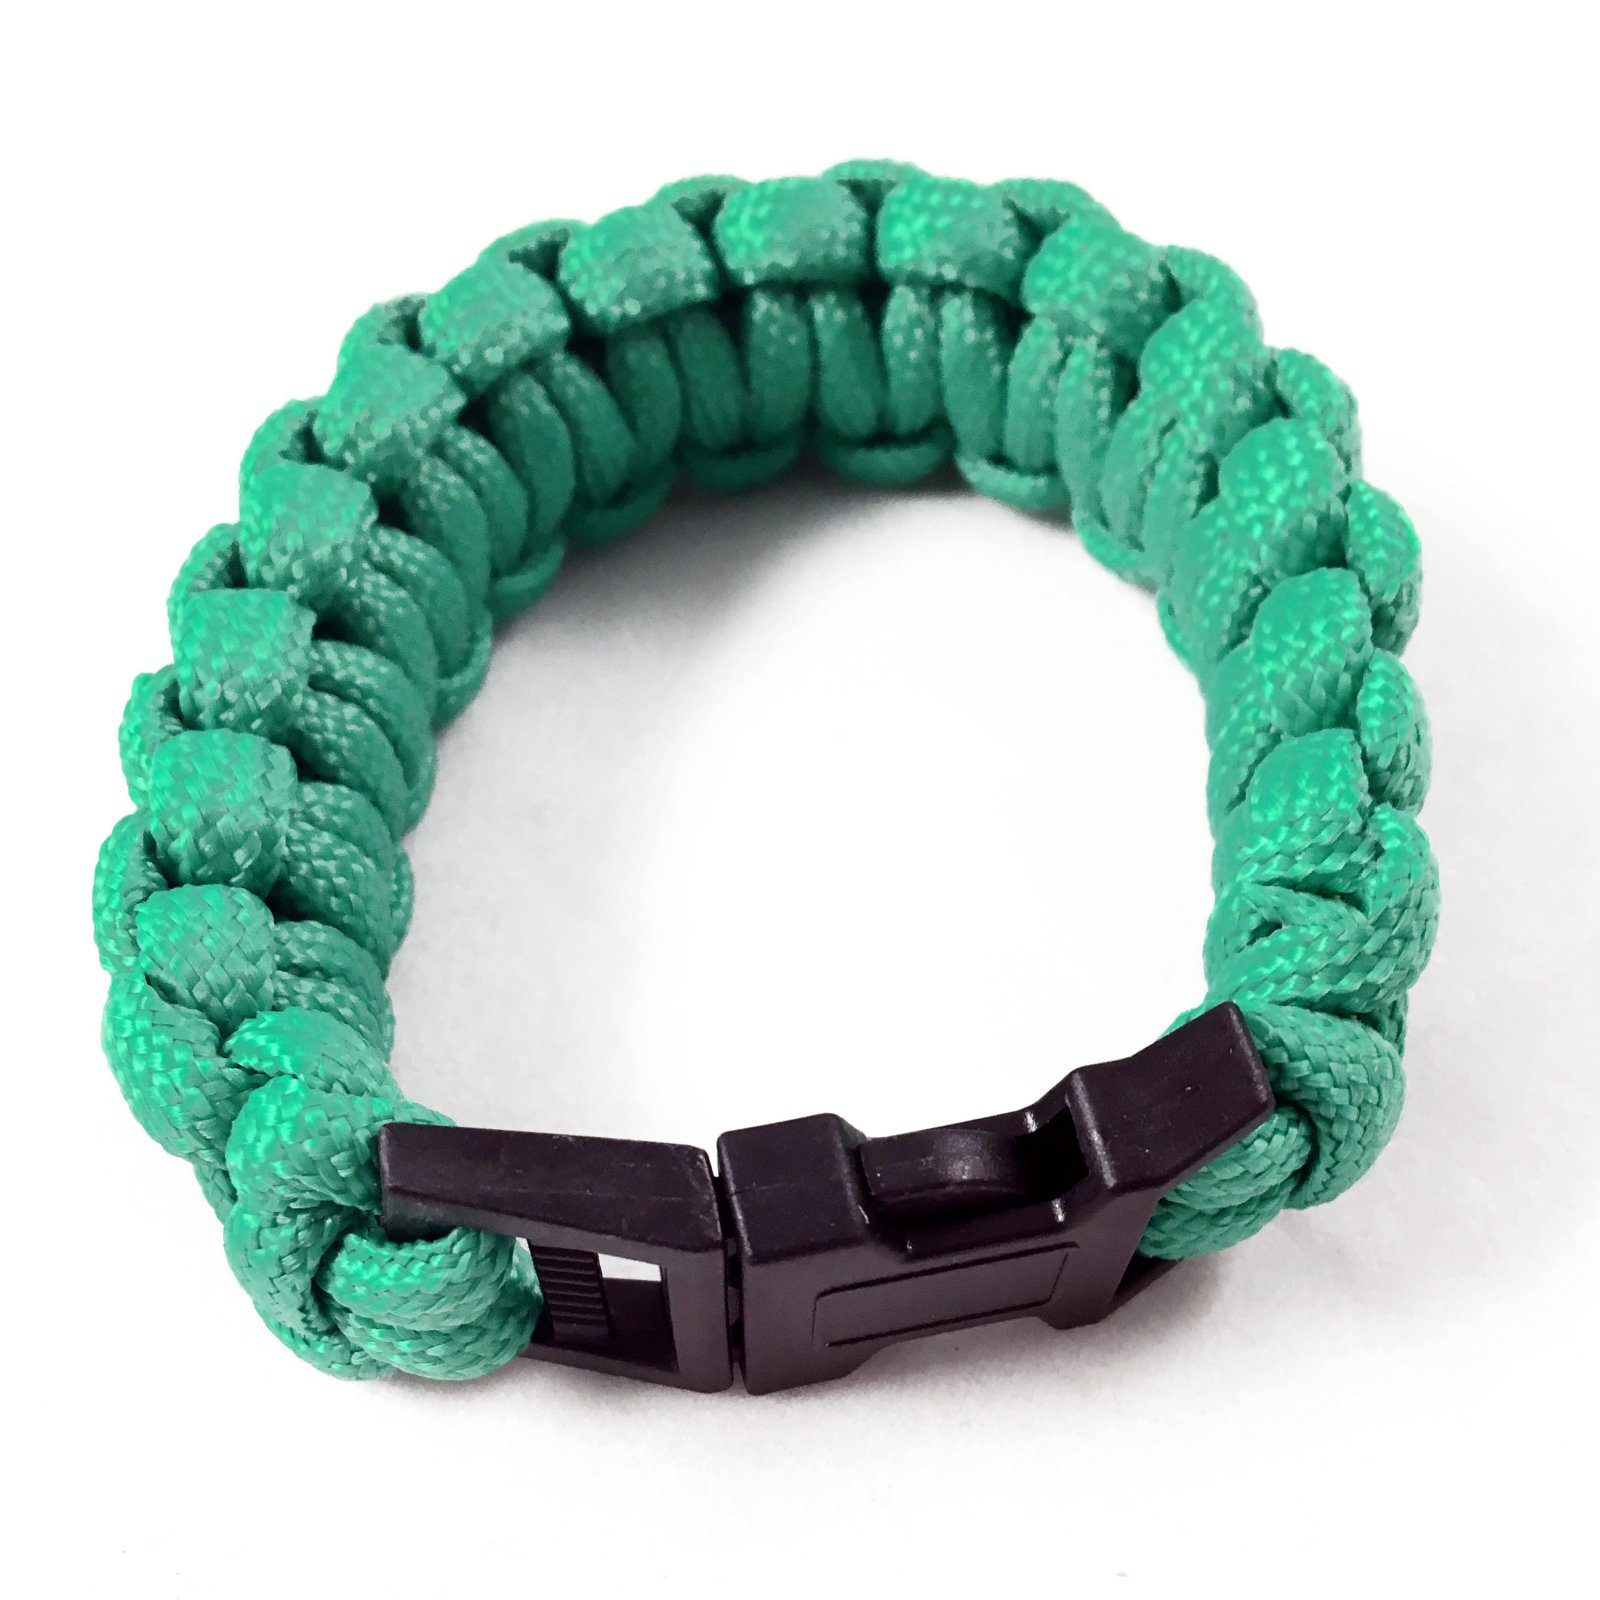 ASR Outdoor - Paracord Bracelet - Green